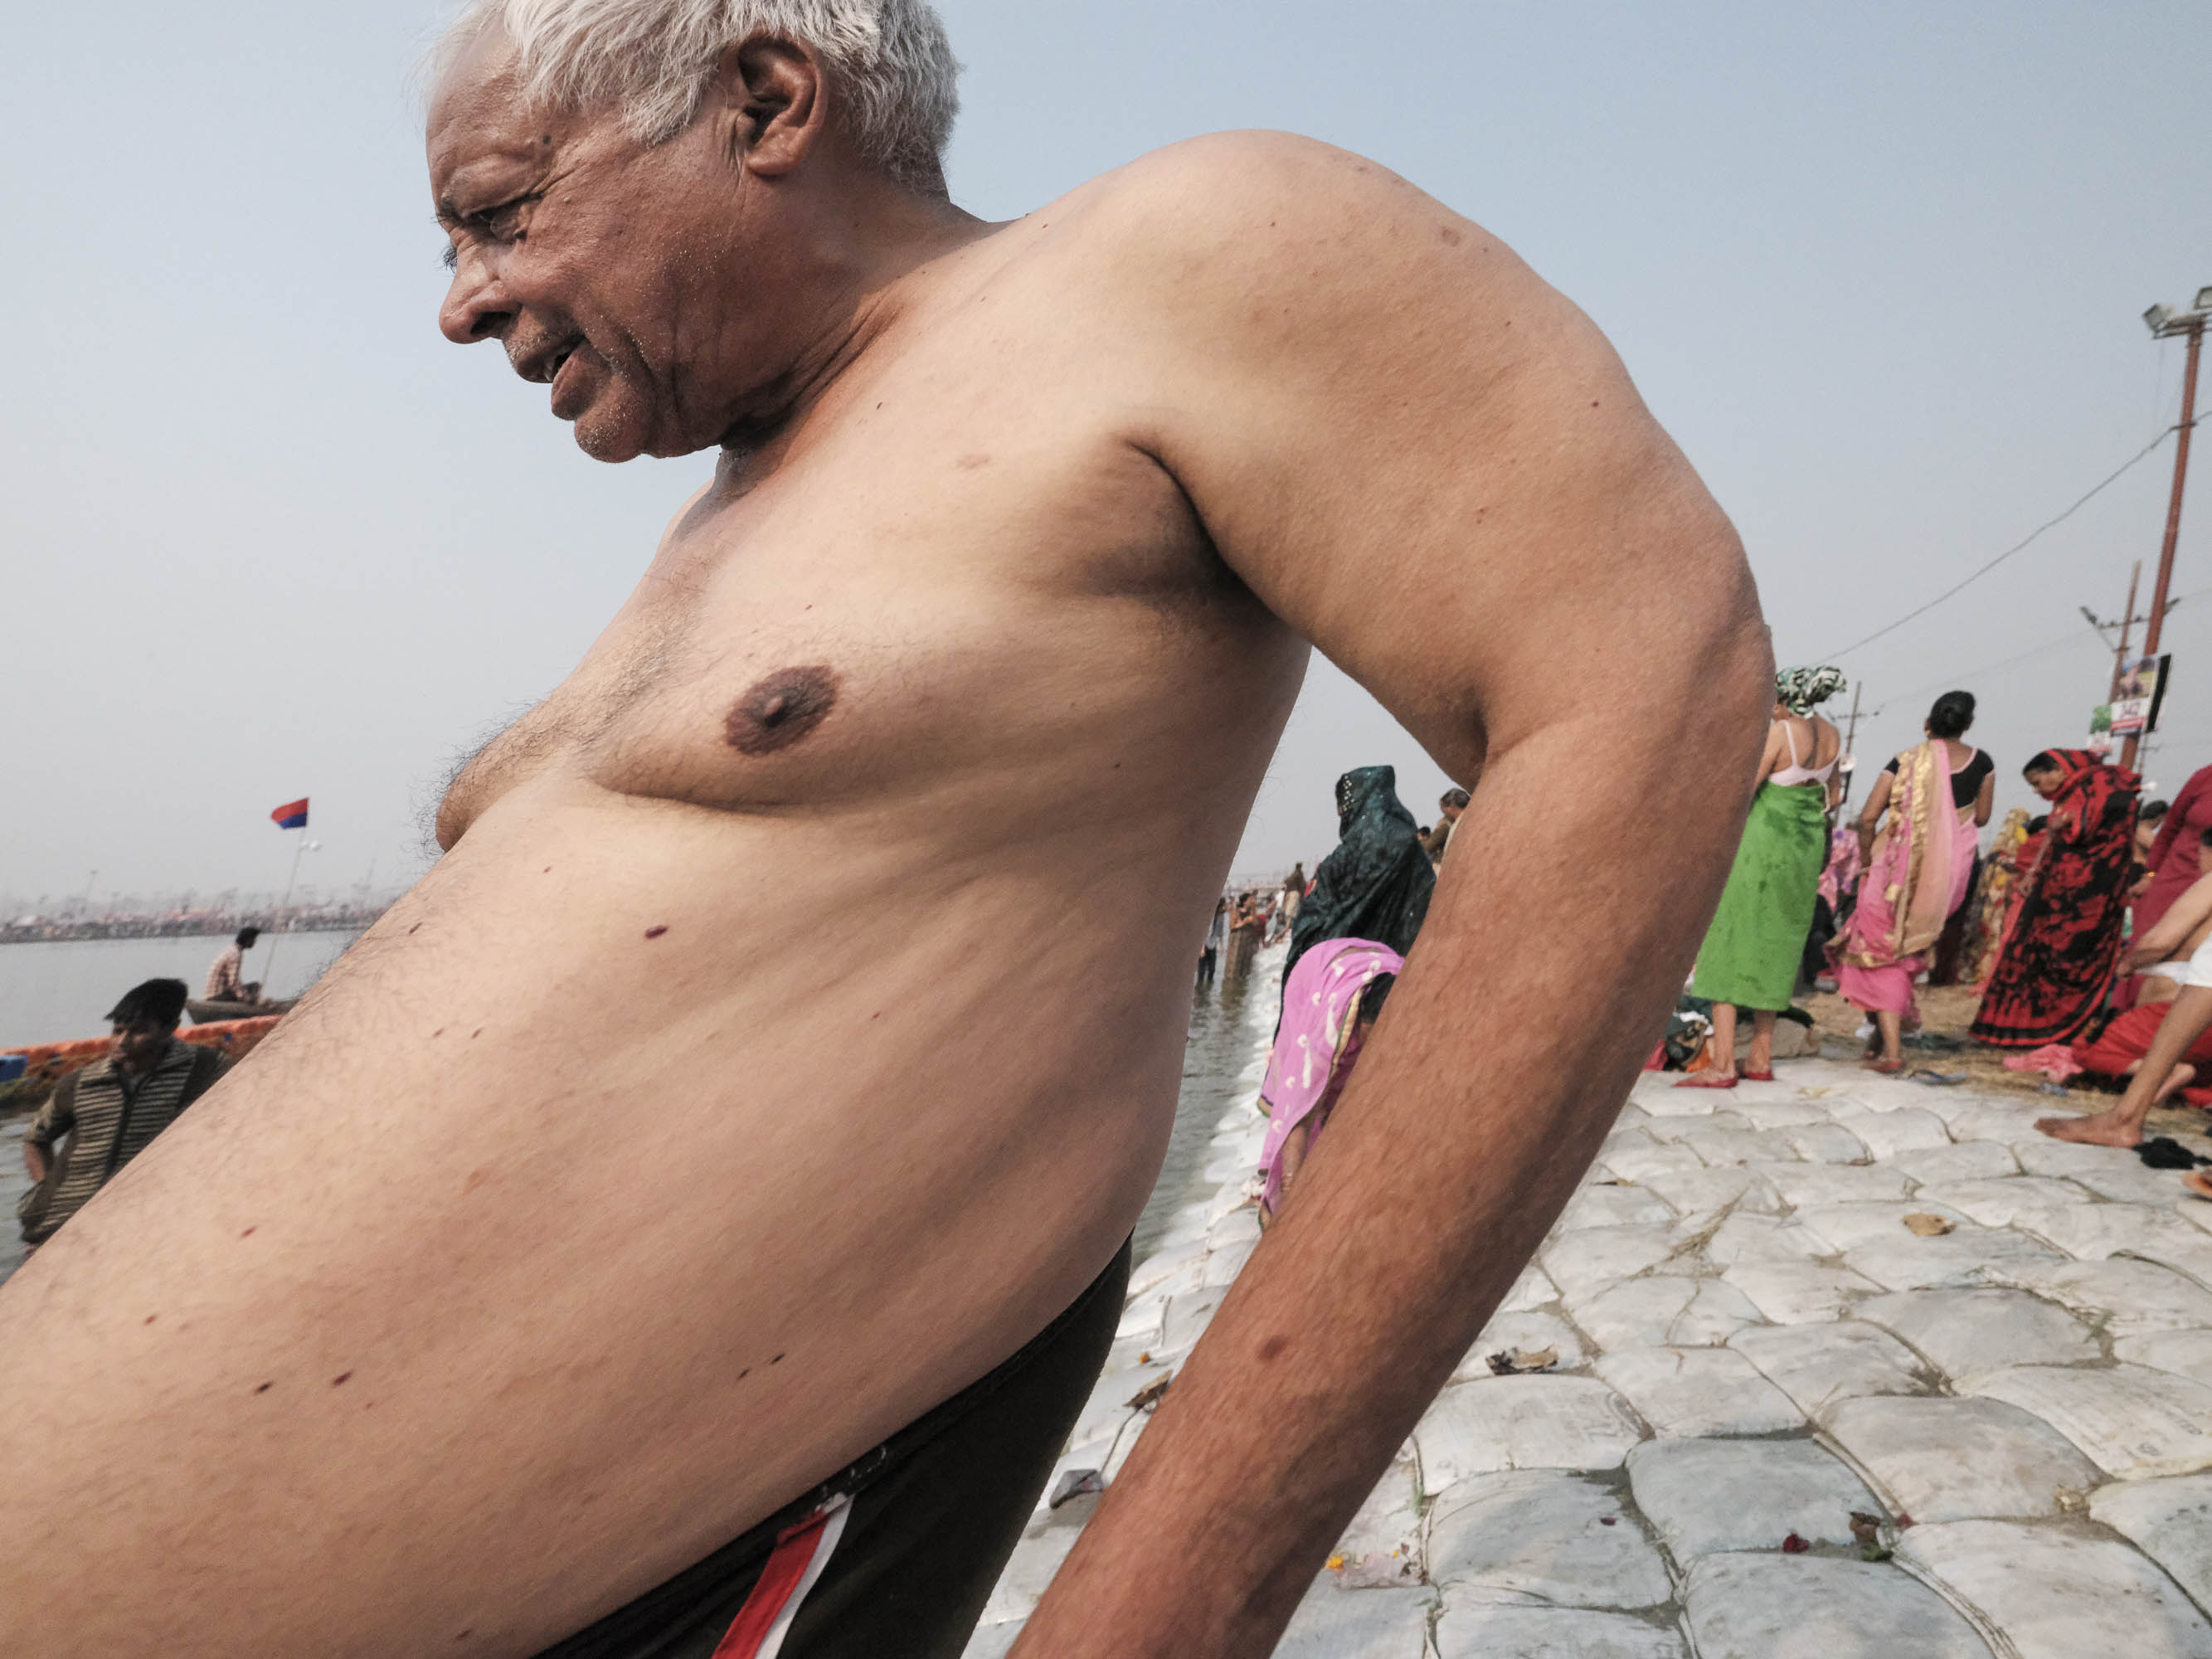 distortion image man bath pilgrims Kumbh mela 2019 India Allahabad Prayagraj Ardh hindu religious Festival event rivers photographer jose jeuland photography